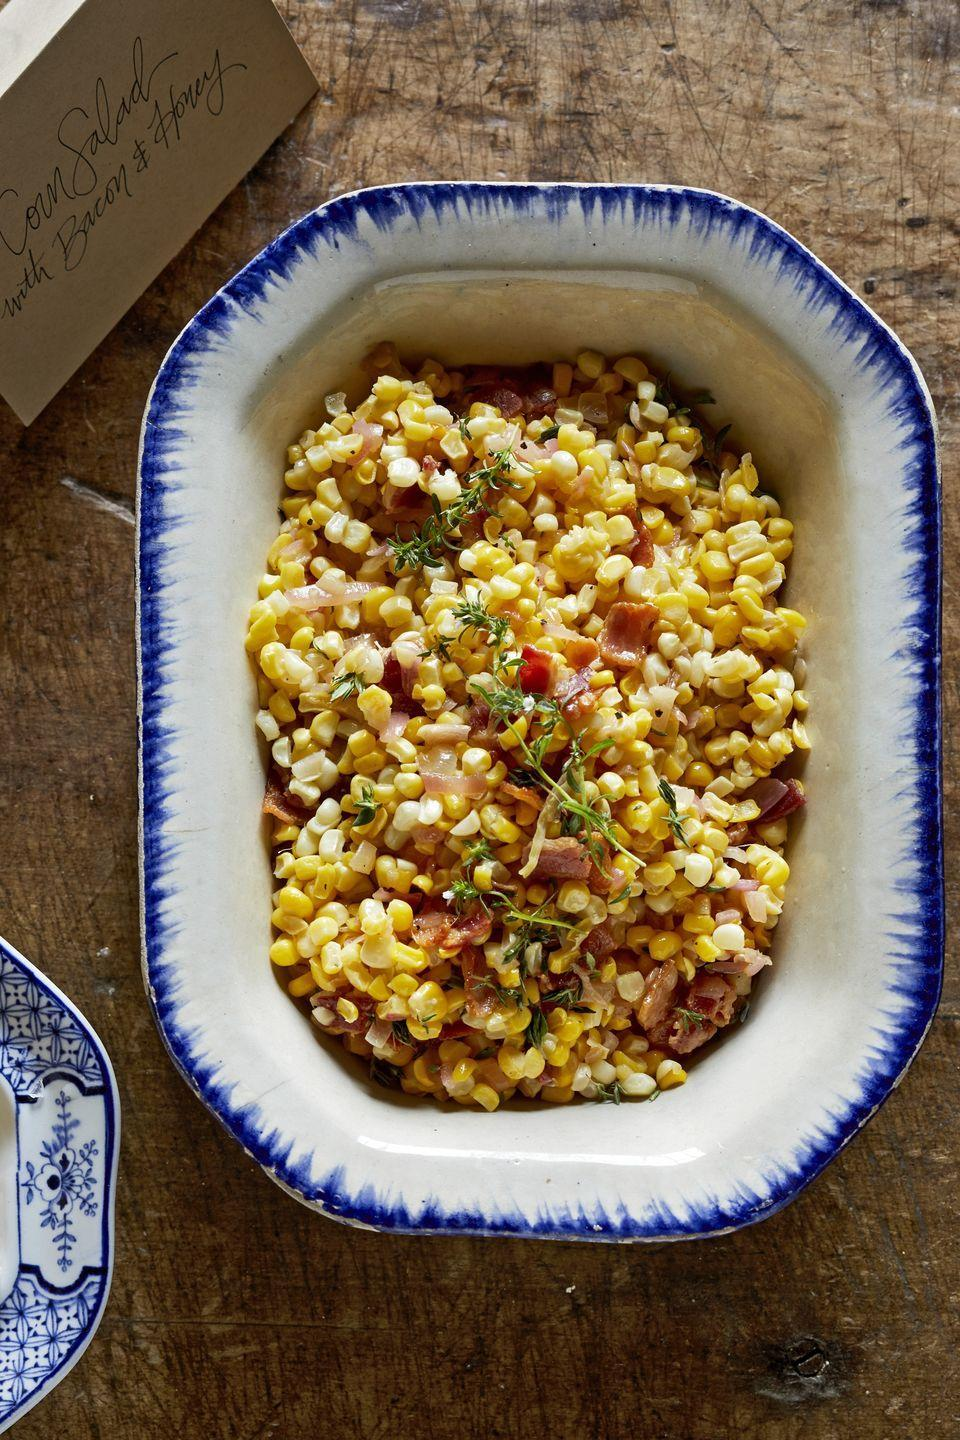 """<p>Honey adds both body and sweet depth to this unbeatable side dish.</p><p><strong><a href=""""https://www.countryliving.com/food-drinks/a29134232/corn-salad-with-bacon-and-honey/"""" rel=""""nofollow noopener"""" target=""""_blank"""" data-ylk=""""slk:Get the recipe"""" class=""""link rapid-noclick-resp"""">Get the recipe</a>.</strong></p>"""